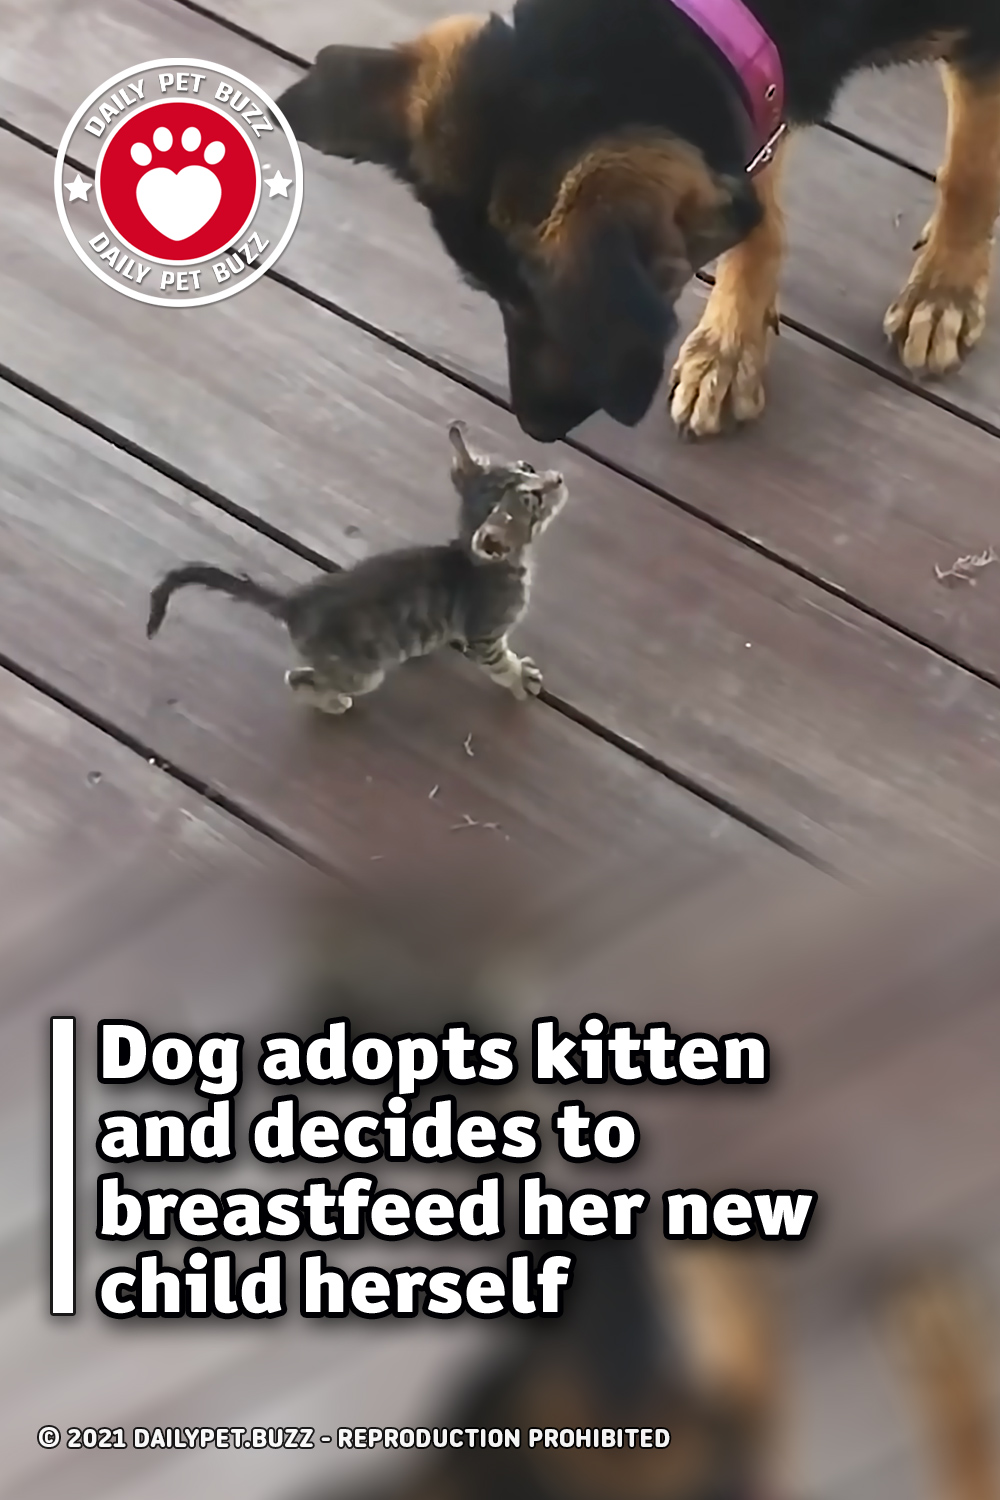 Dog adopts kitten and decides to breastfeed her new child herself